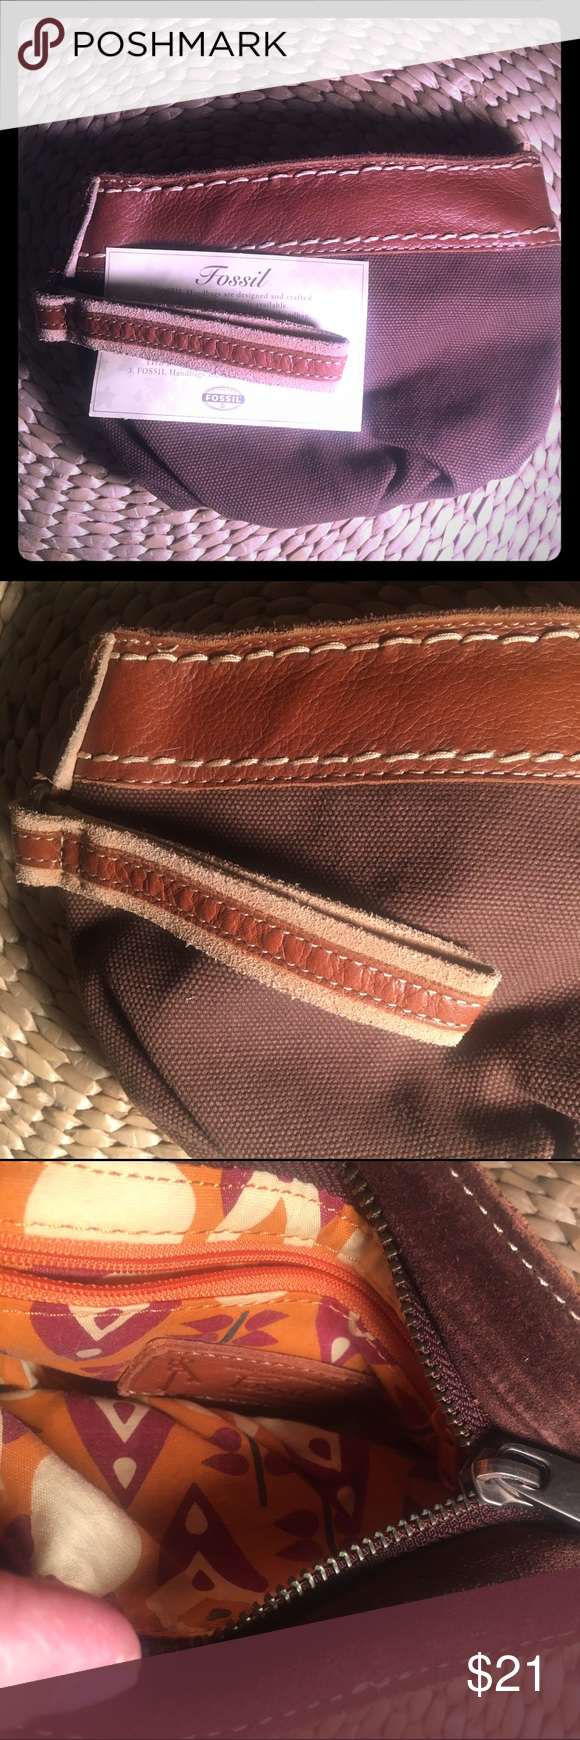 Fossil wristlet NWT Vintage collection NWT WRISTLET•zipper top opening and inside zipper. Brown fabric with logo Fossil fabric inside. Outer leather trim wth leather strap. Excellent condition never been used Bags Clutches & Wristlets